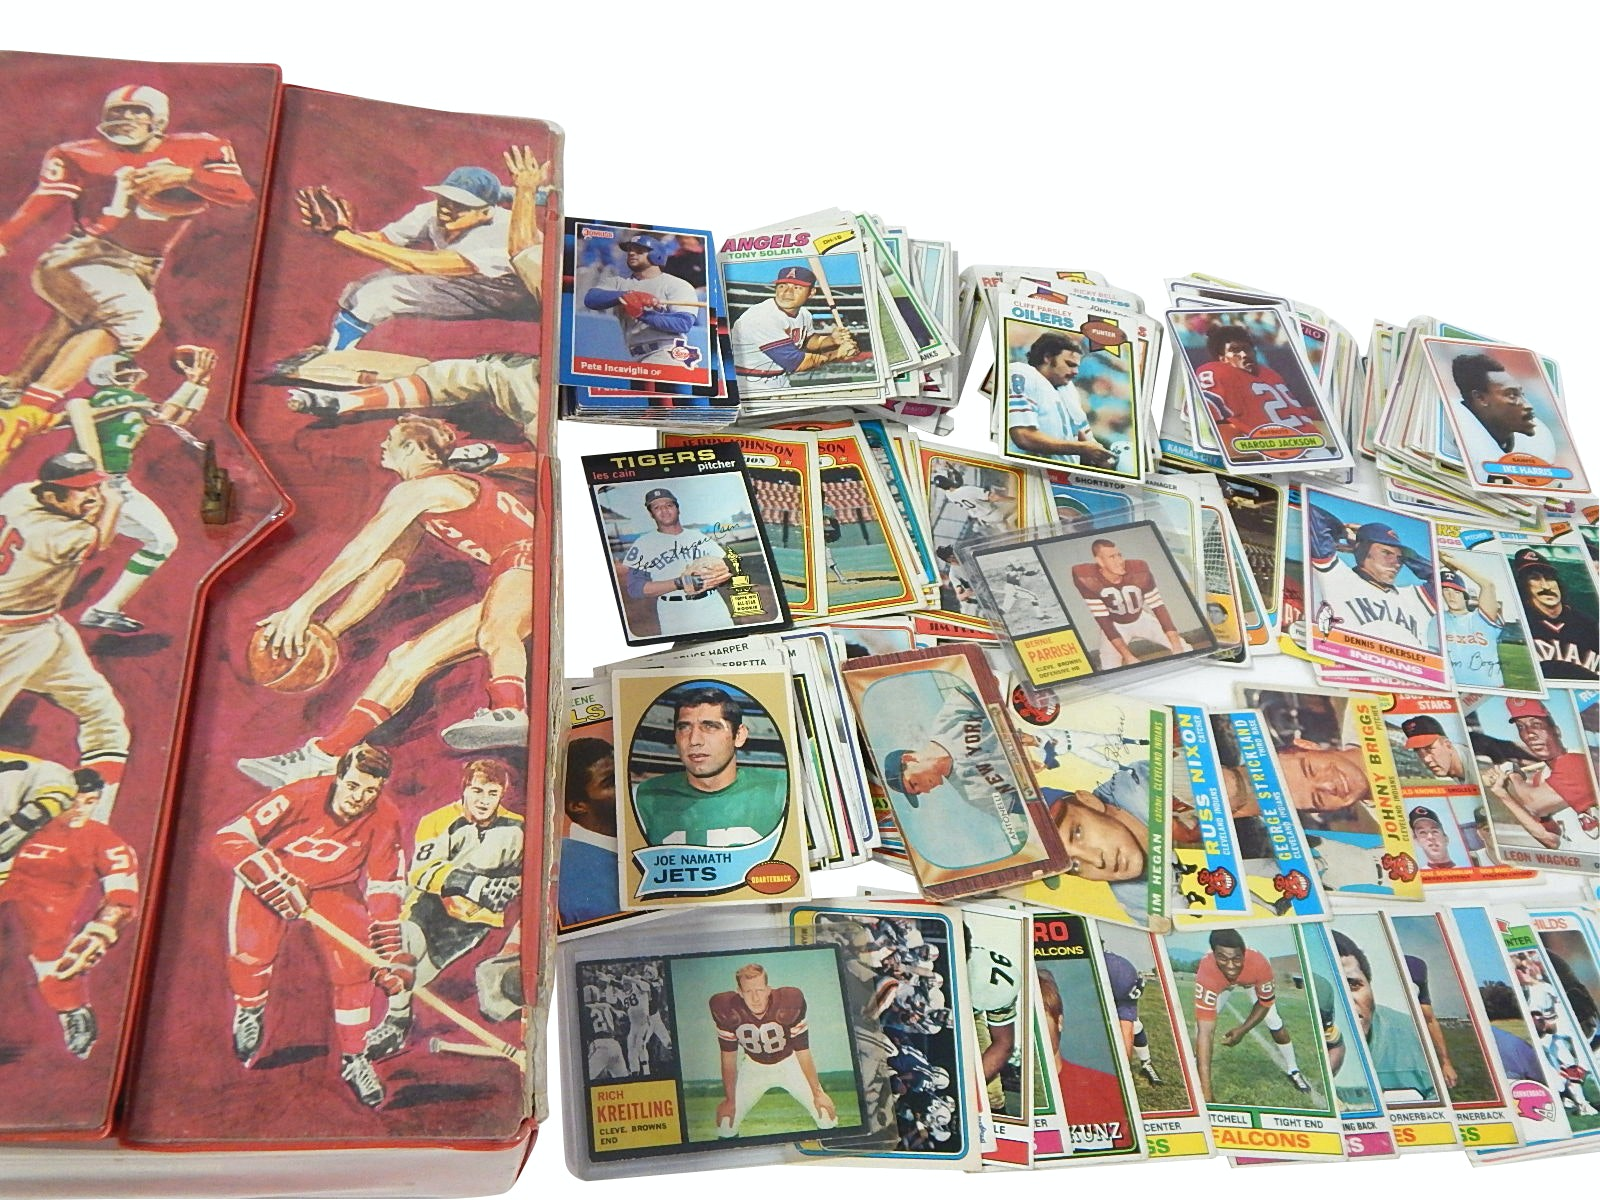 Vintage Sports Card Carrier and Baseball and Football Card Collection 1950s/80s